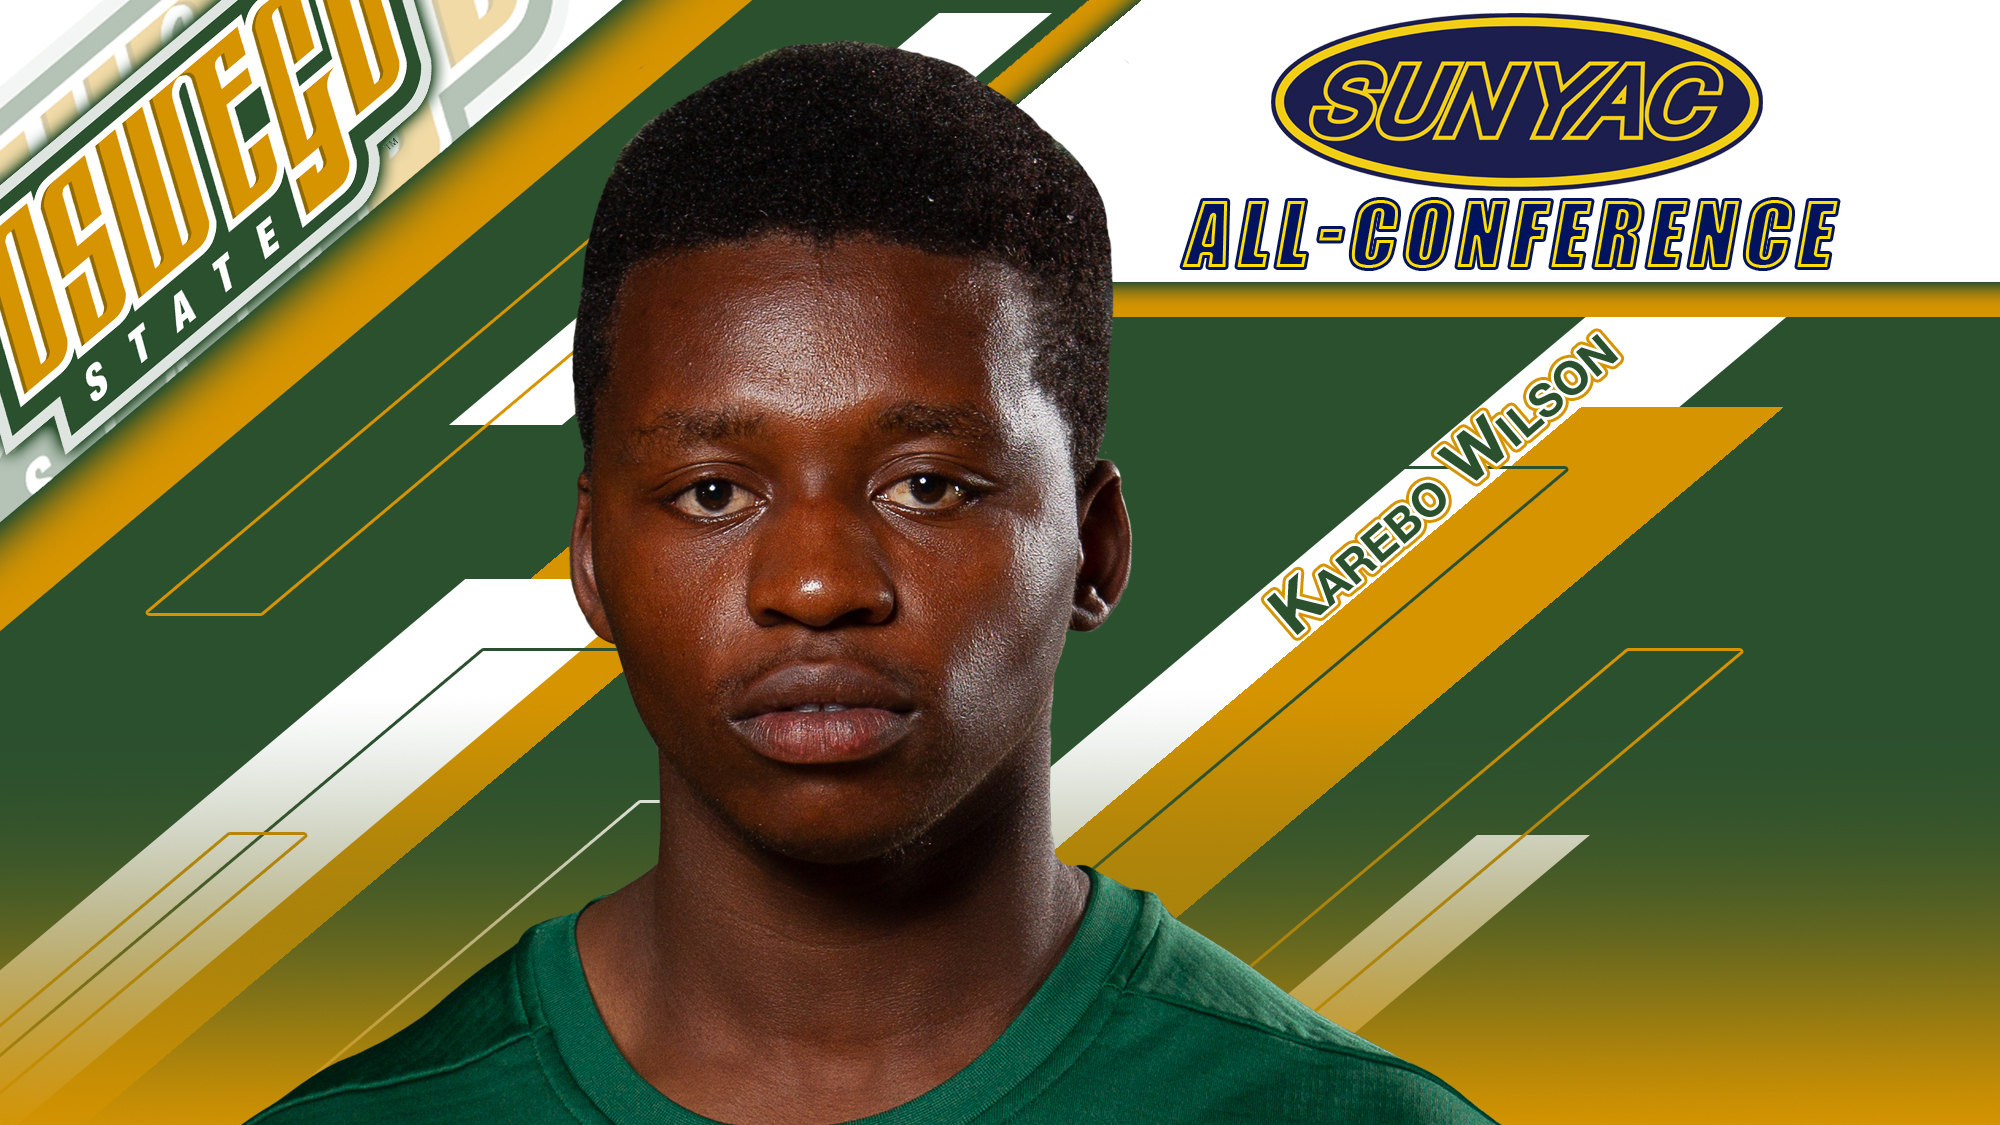 Sunyac all conference wilson